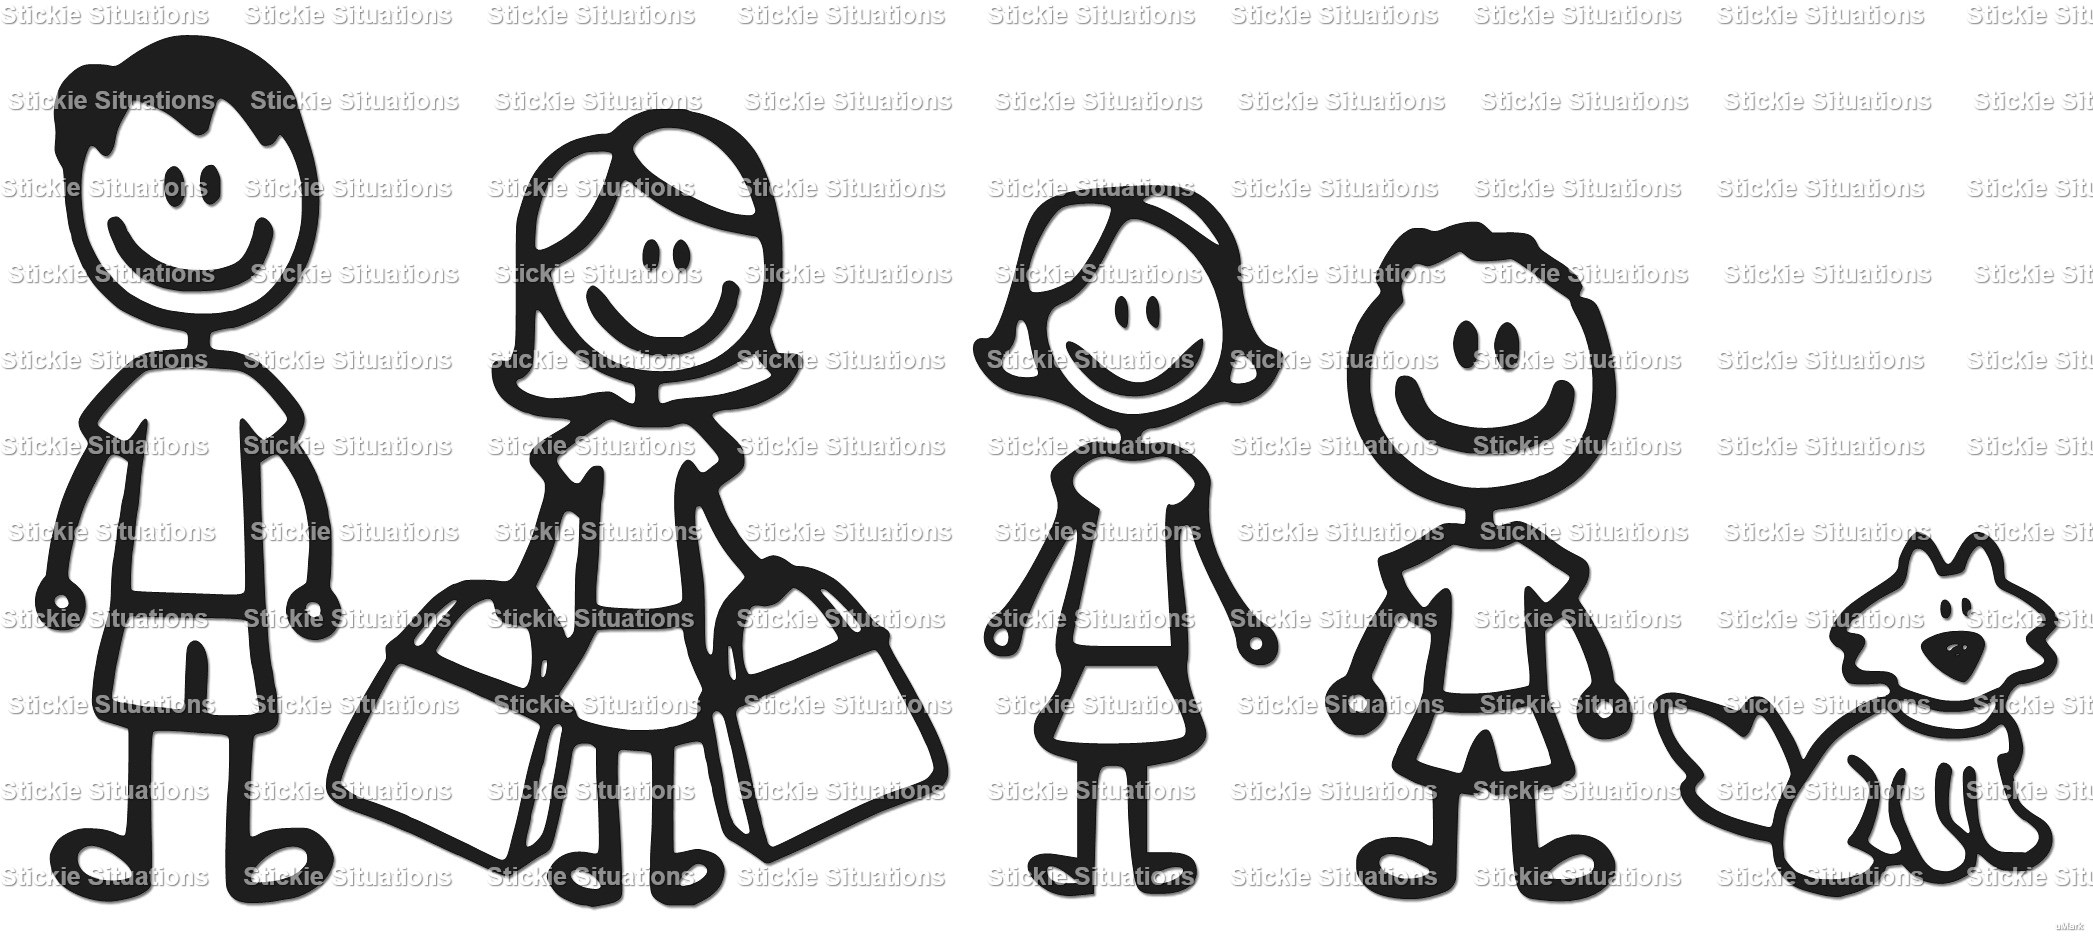 2093x942 Stick Family Group With Items